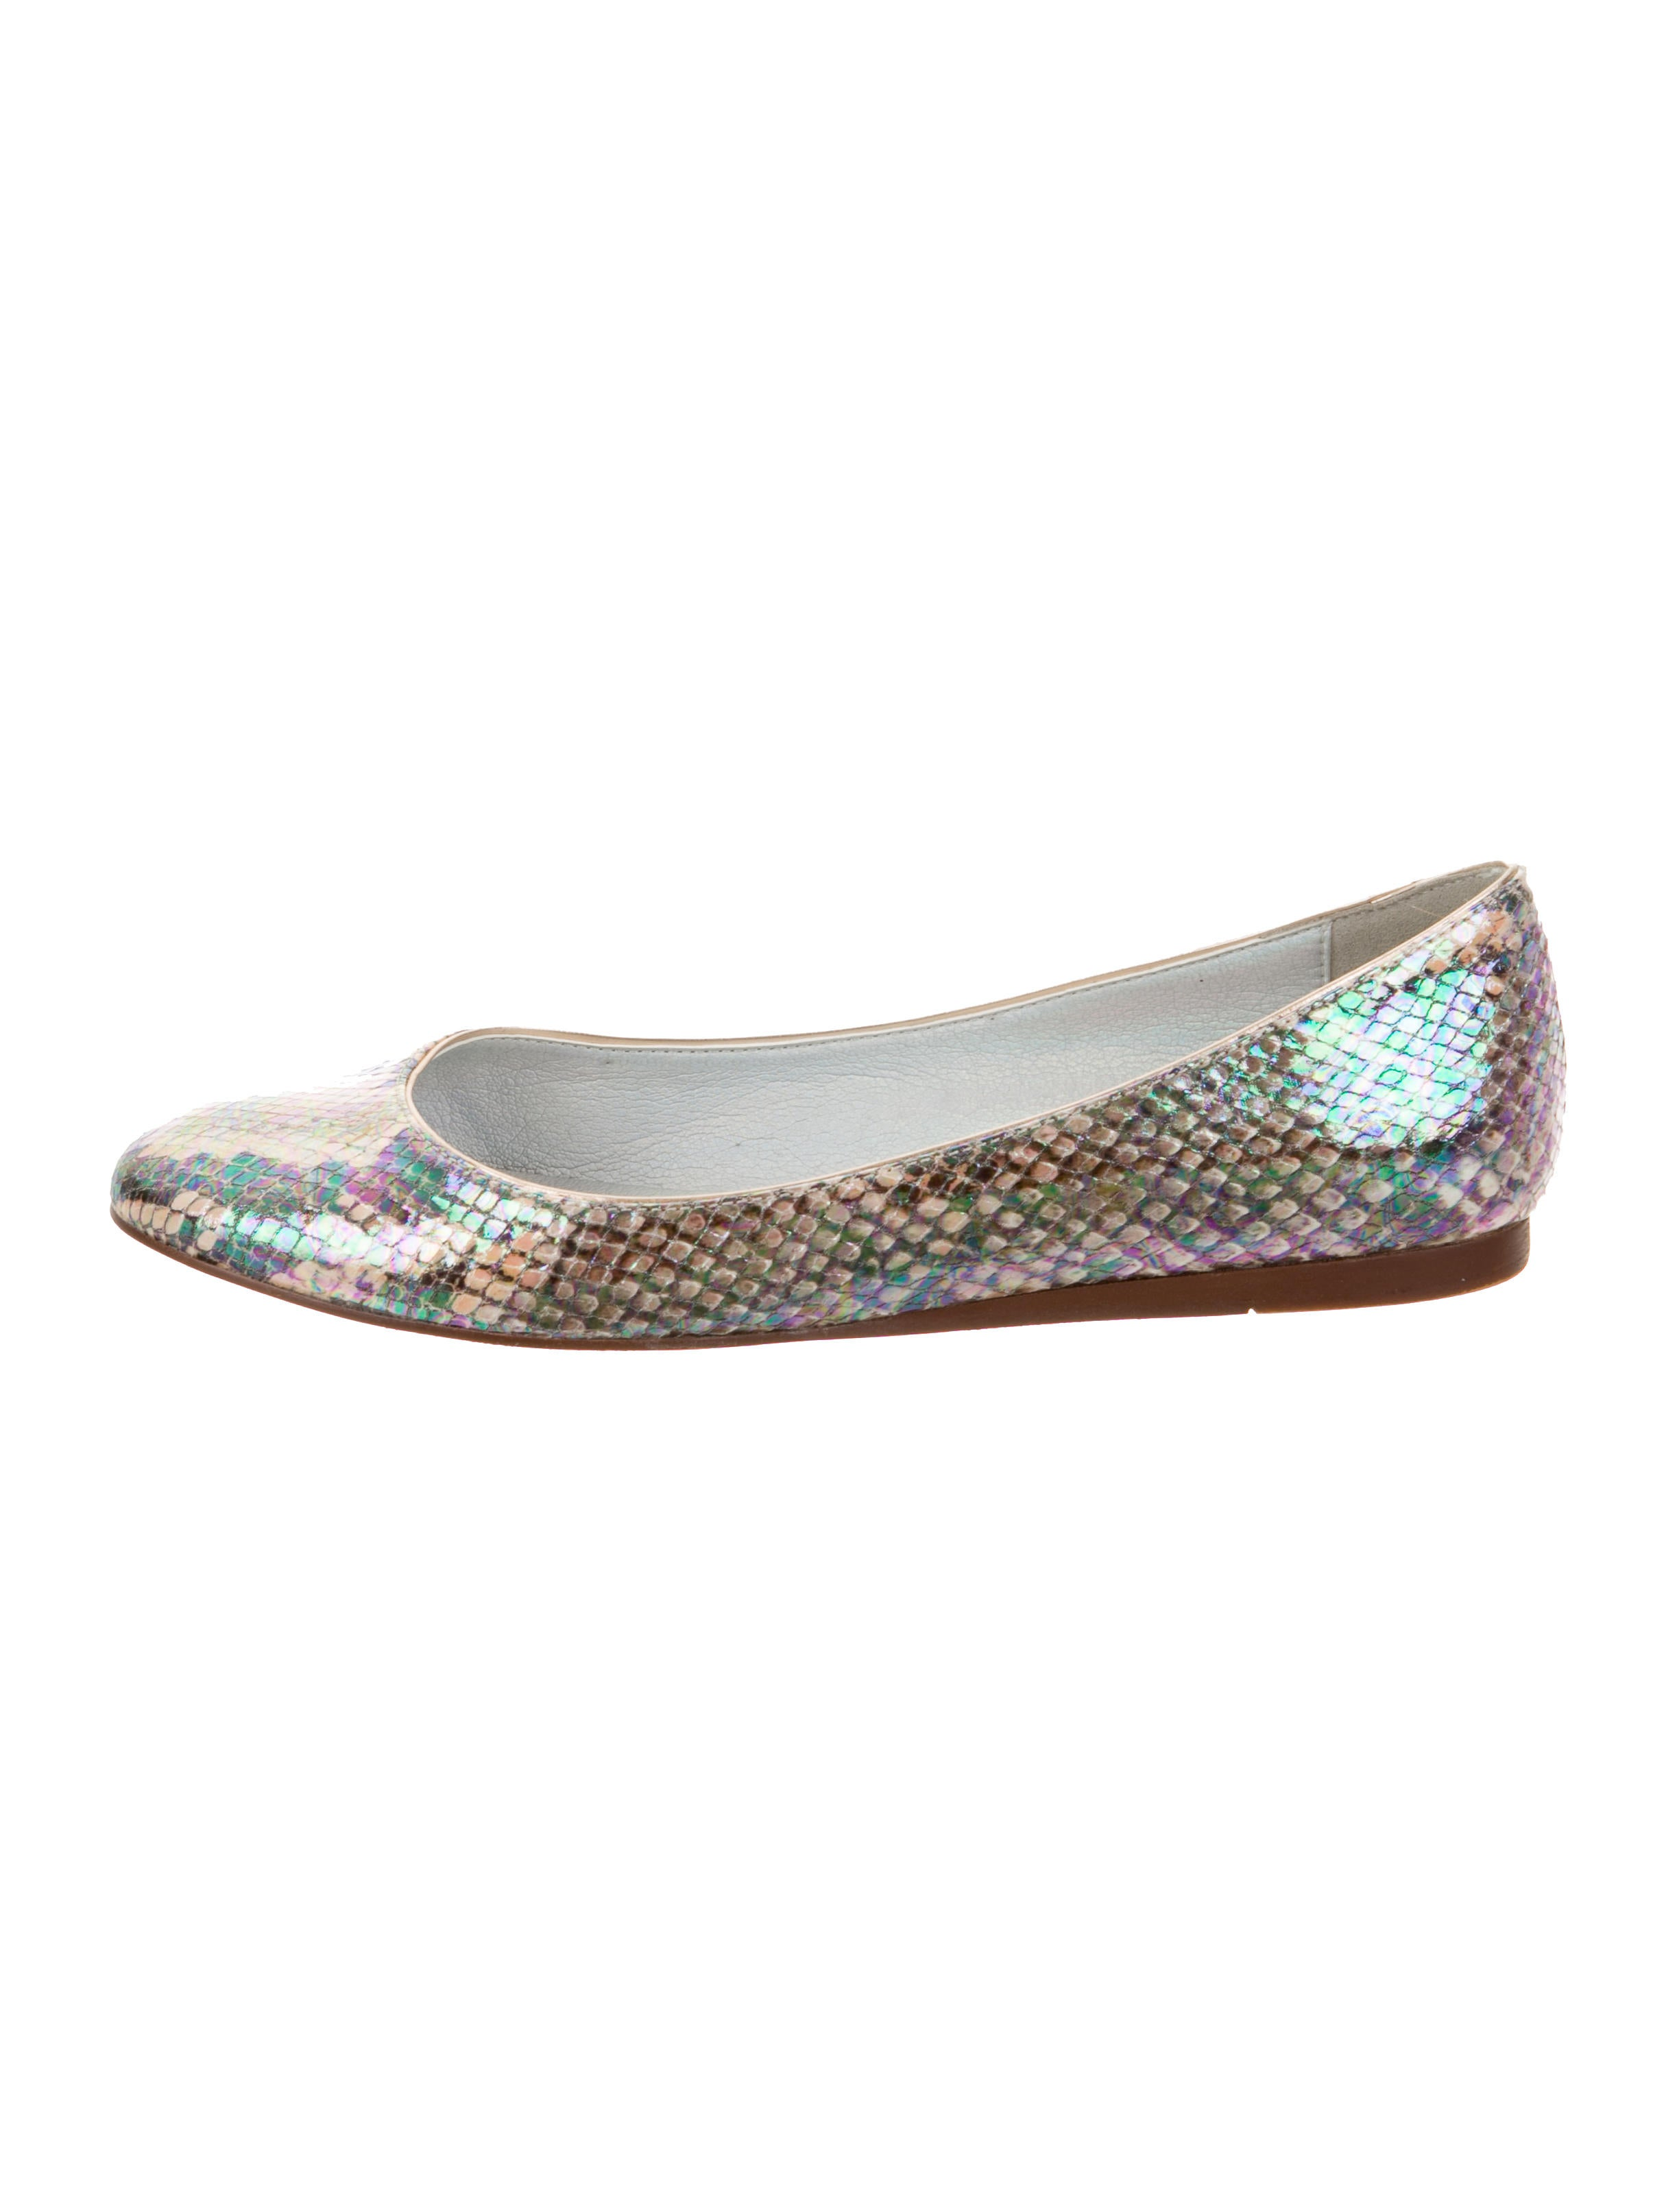 cheap cost sale sale online Stella McCartney Vegan Embossed Leather Flats sale outlet store low price fee shipping sale online factory outlet for sale 0cdLlRS